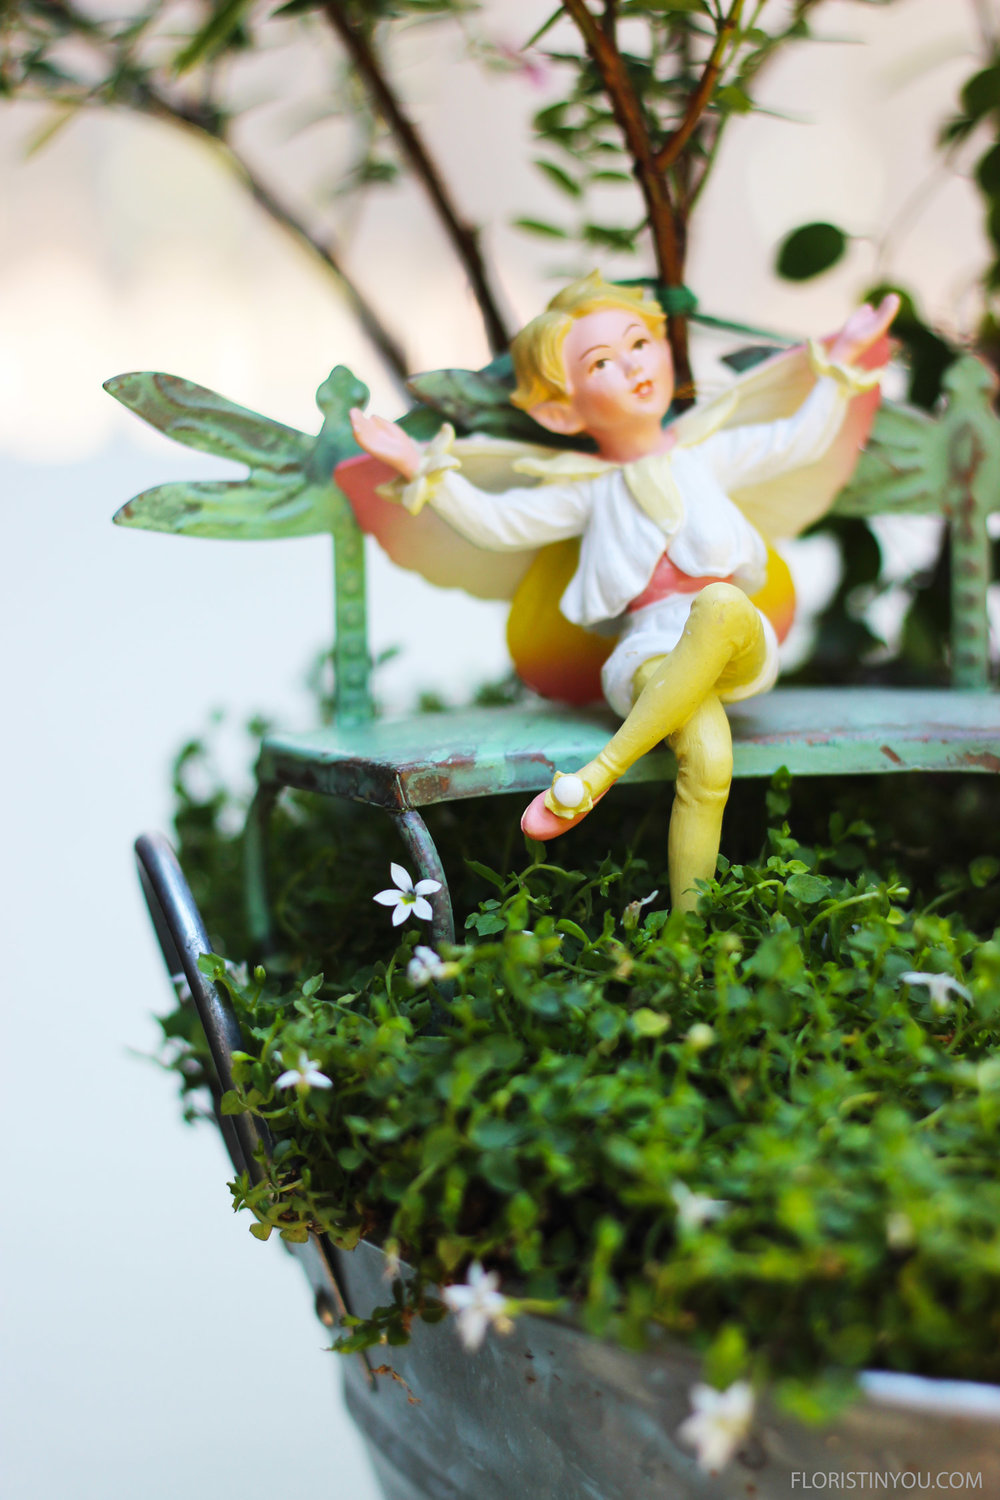 I love the shoes and costume of the Pear Blossom Fairie.